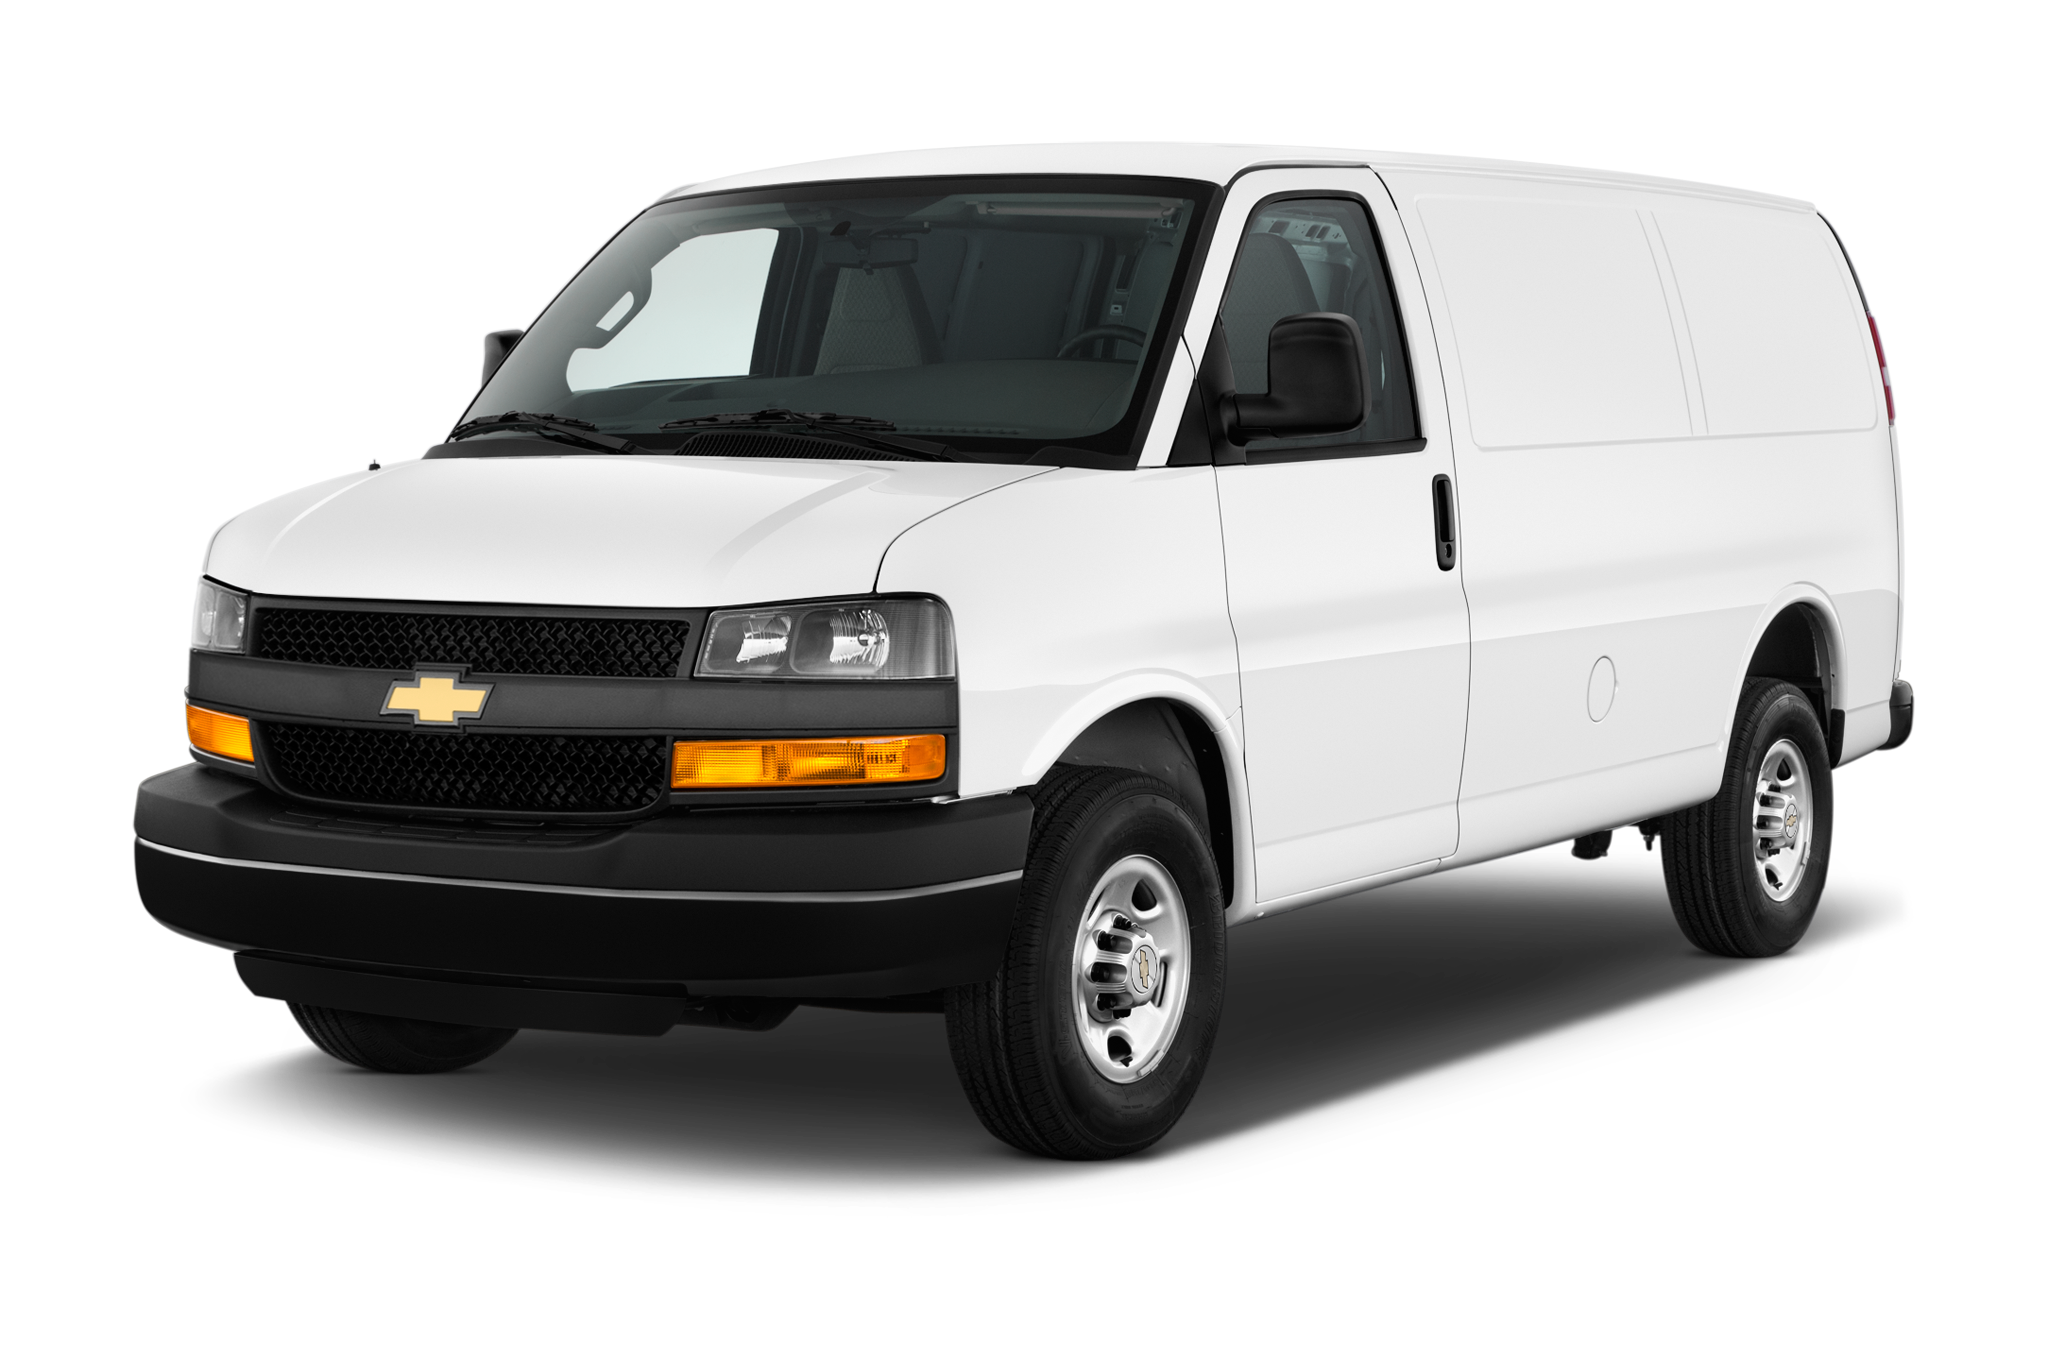 2018-chevrolet-express-2500-work-cargo-van-angular-front Great Description About 2011 Chevy Aveo Recalls with Captivating Images Cars Review